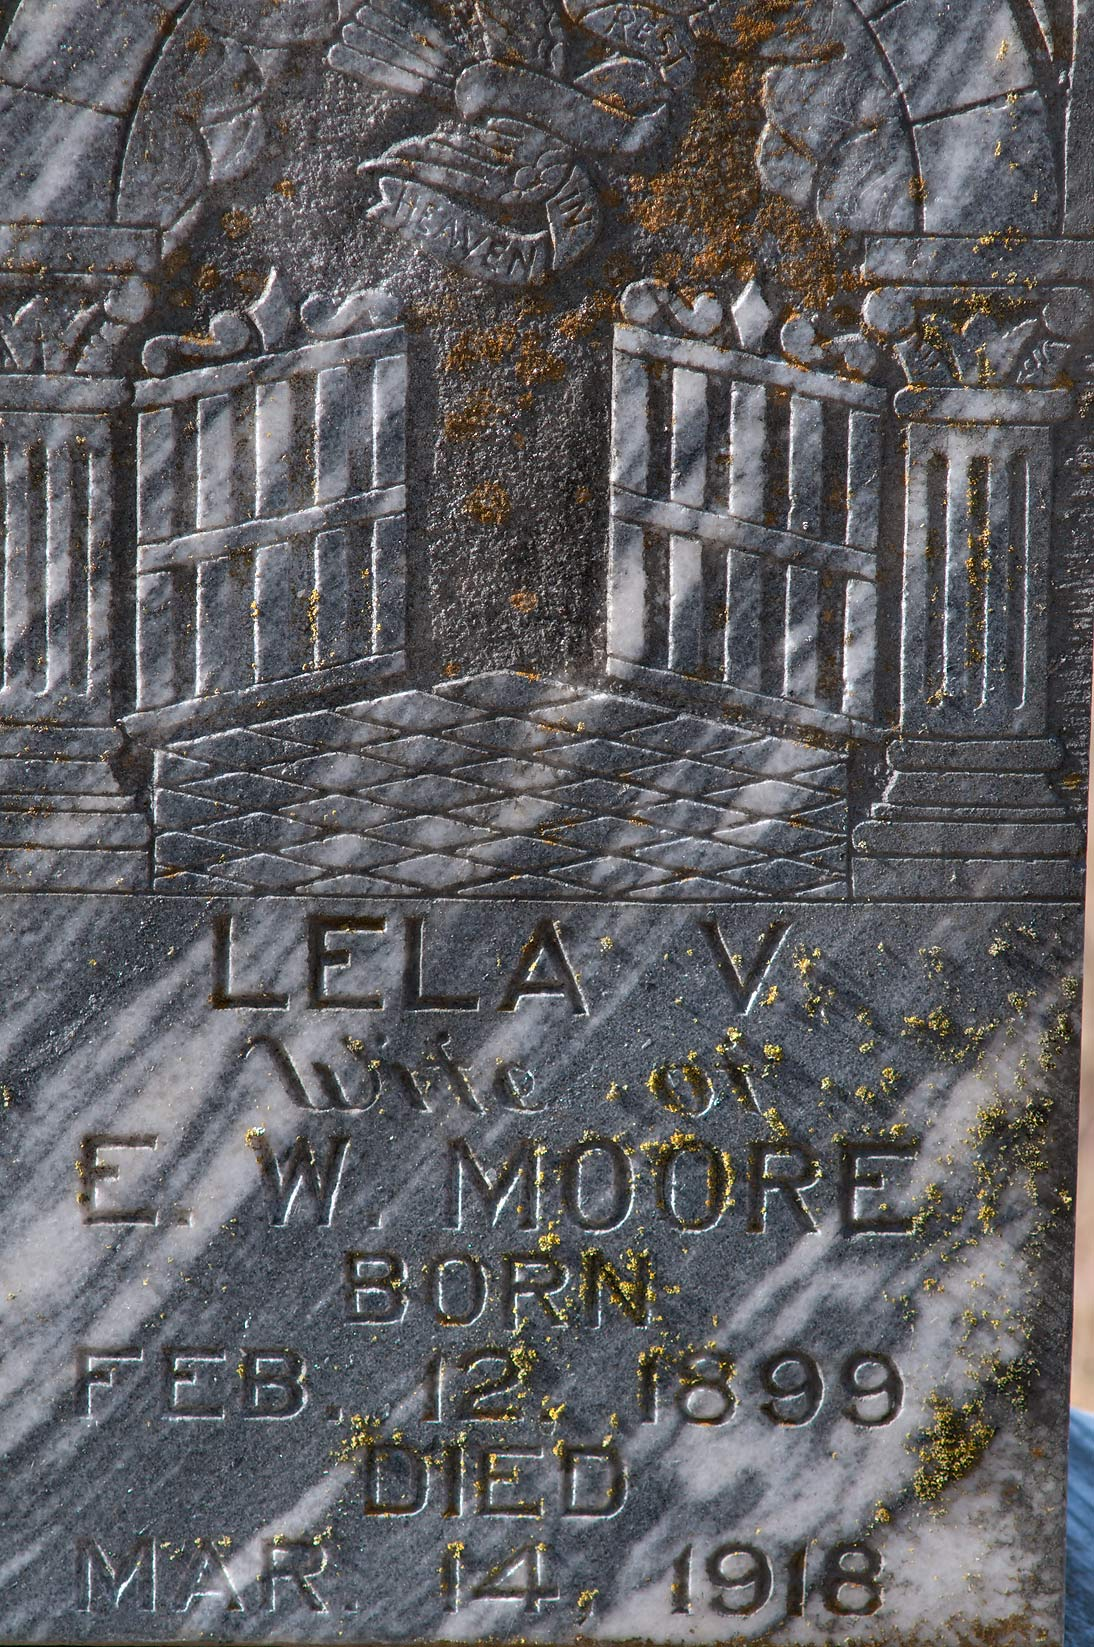 Art Deco tomb of E. W. Moore at Rice Cemetery at Rd. 241 near Cameron. Texas